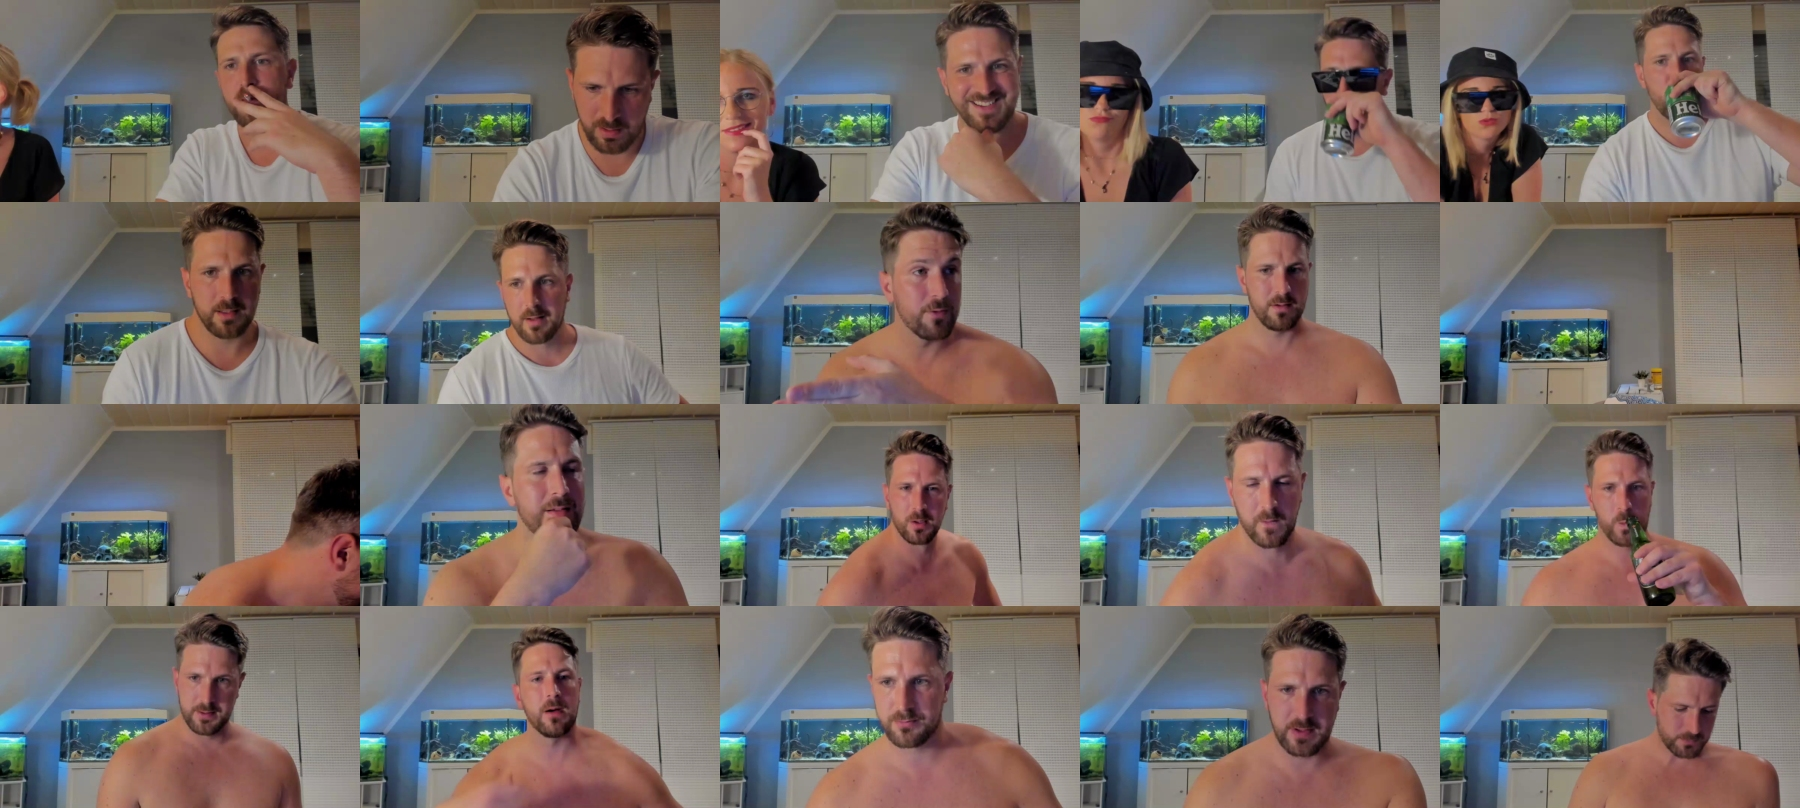 ronhill13 Cam4 25-09-2021 Recorded Video XXX